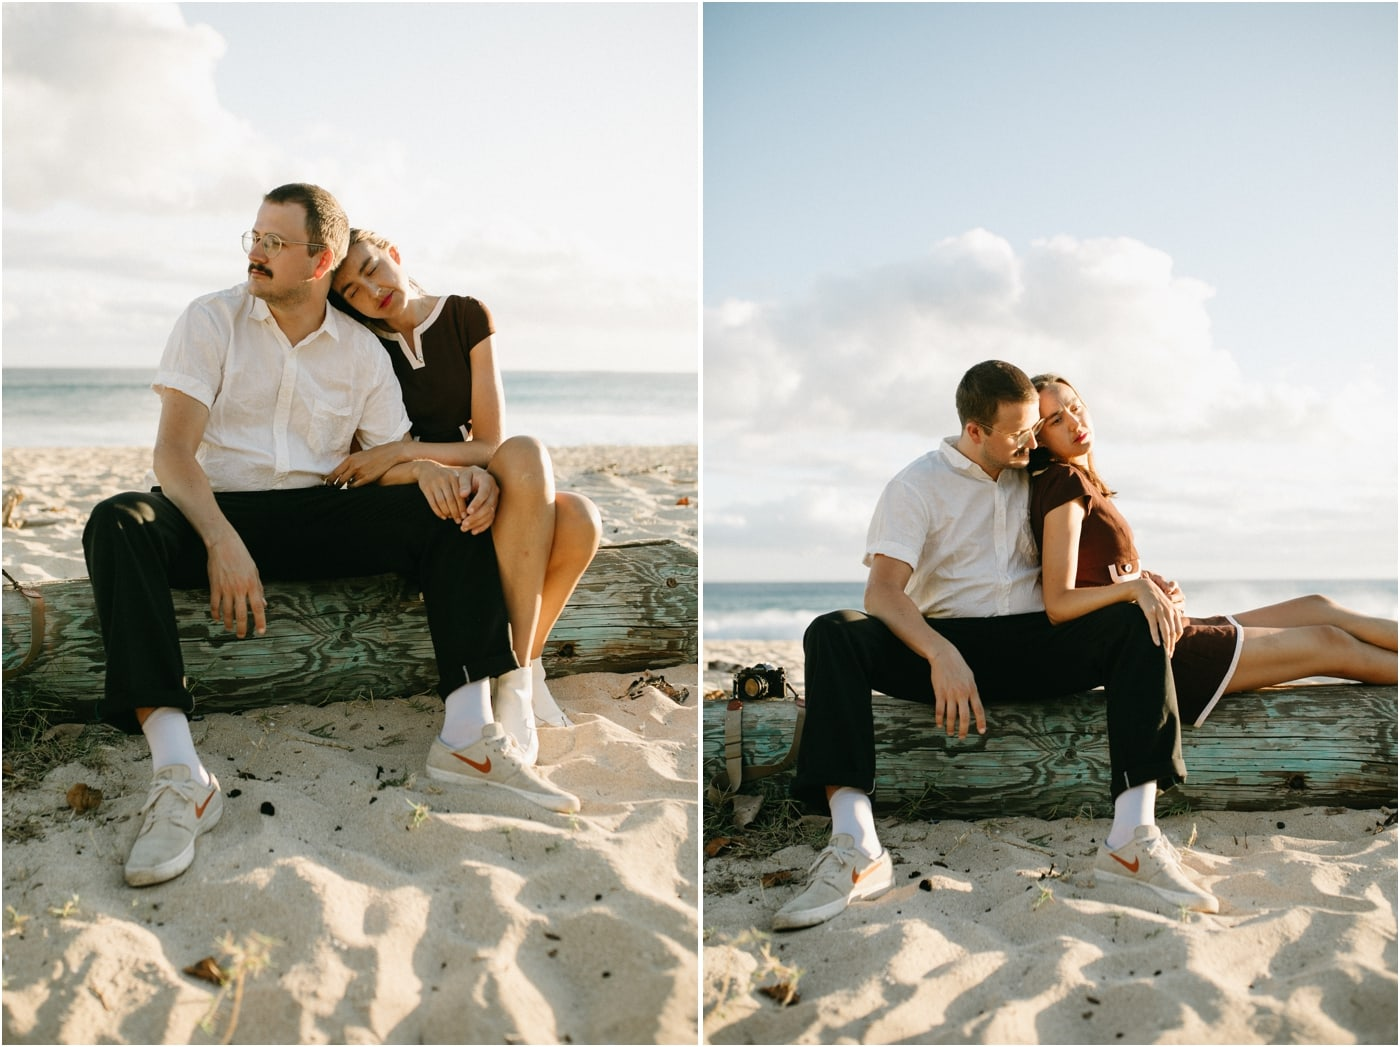 Vintage-inspired editorial couples session in Oahu